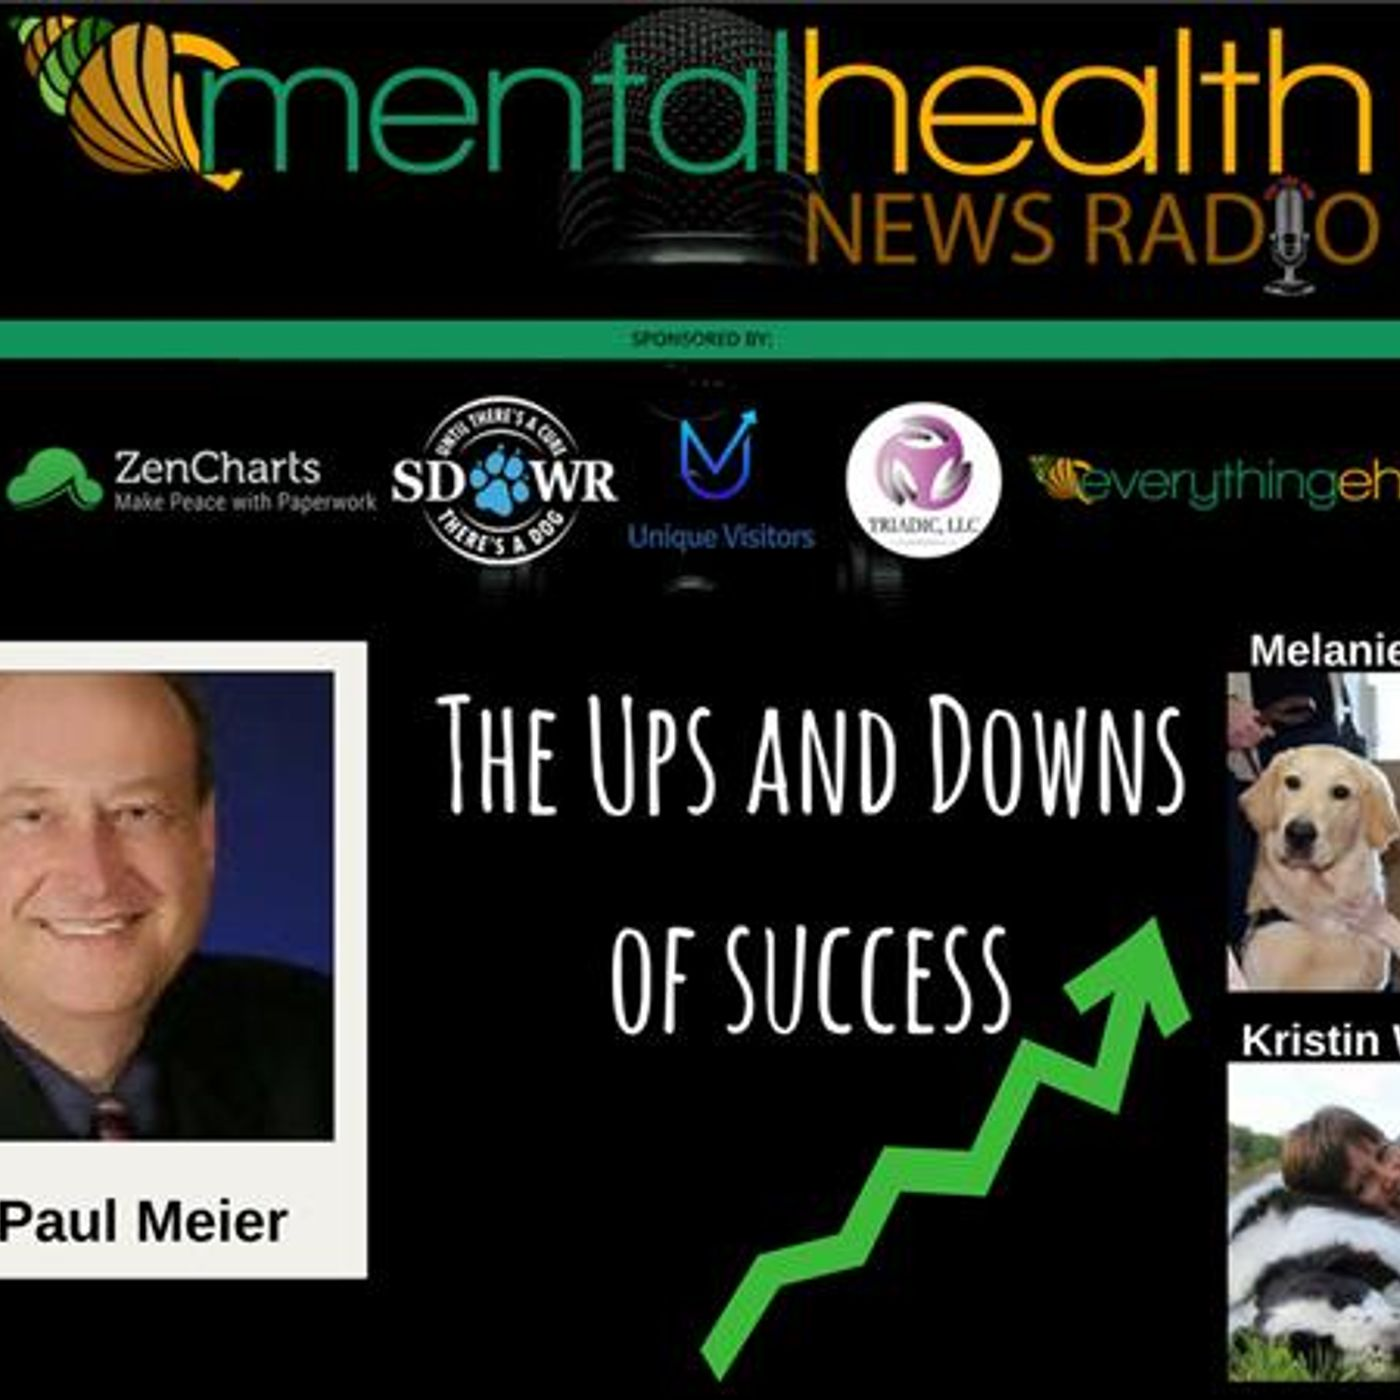 Mental Health News Radio - Round Table Discussions with Paul Meier: The Ups and Downs of Success